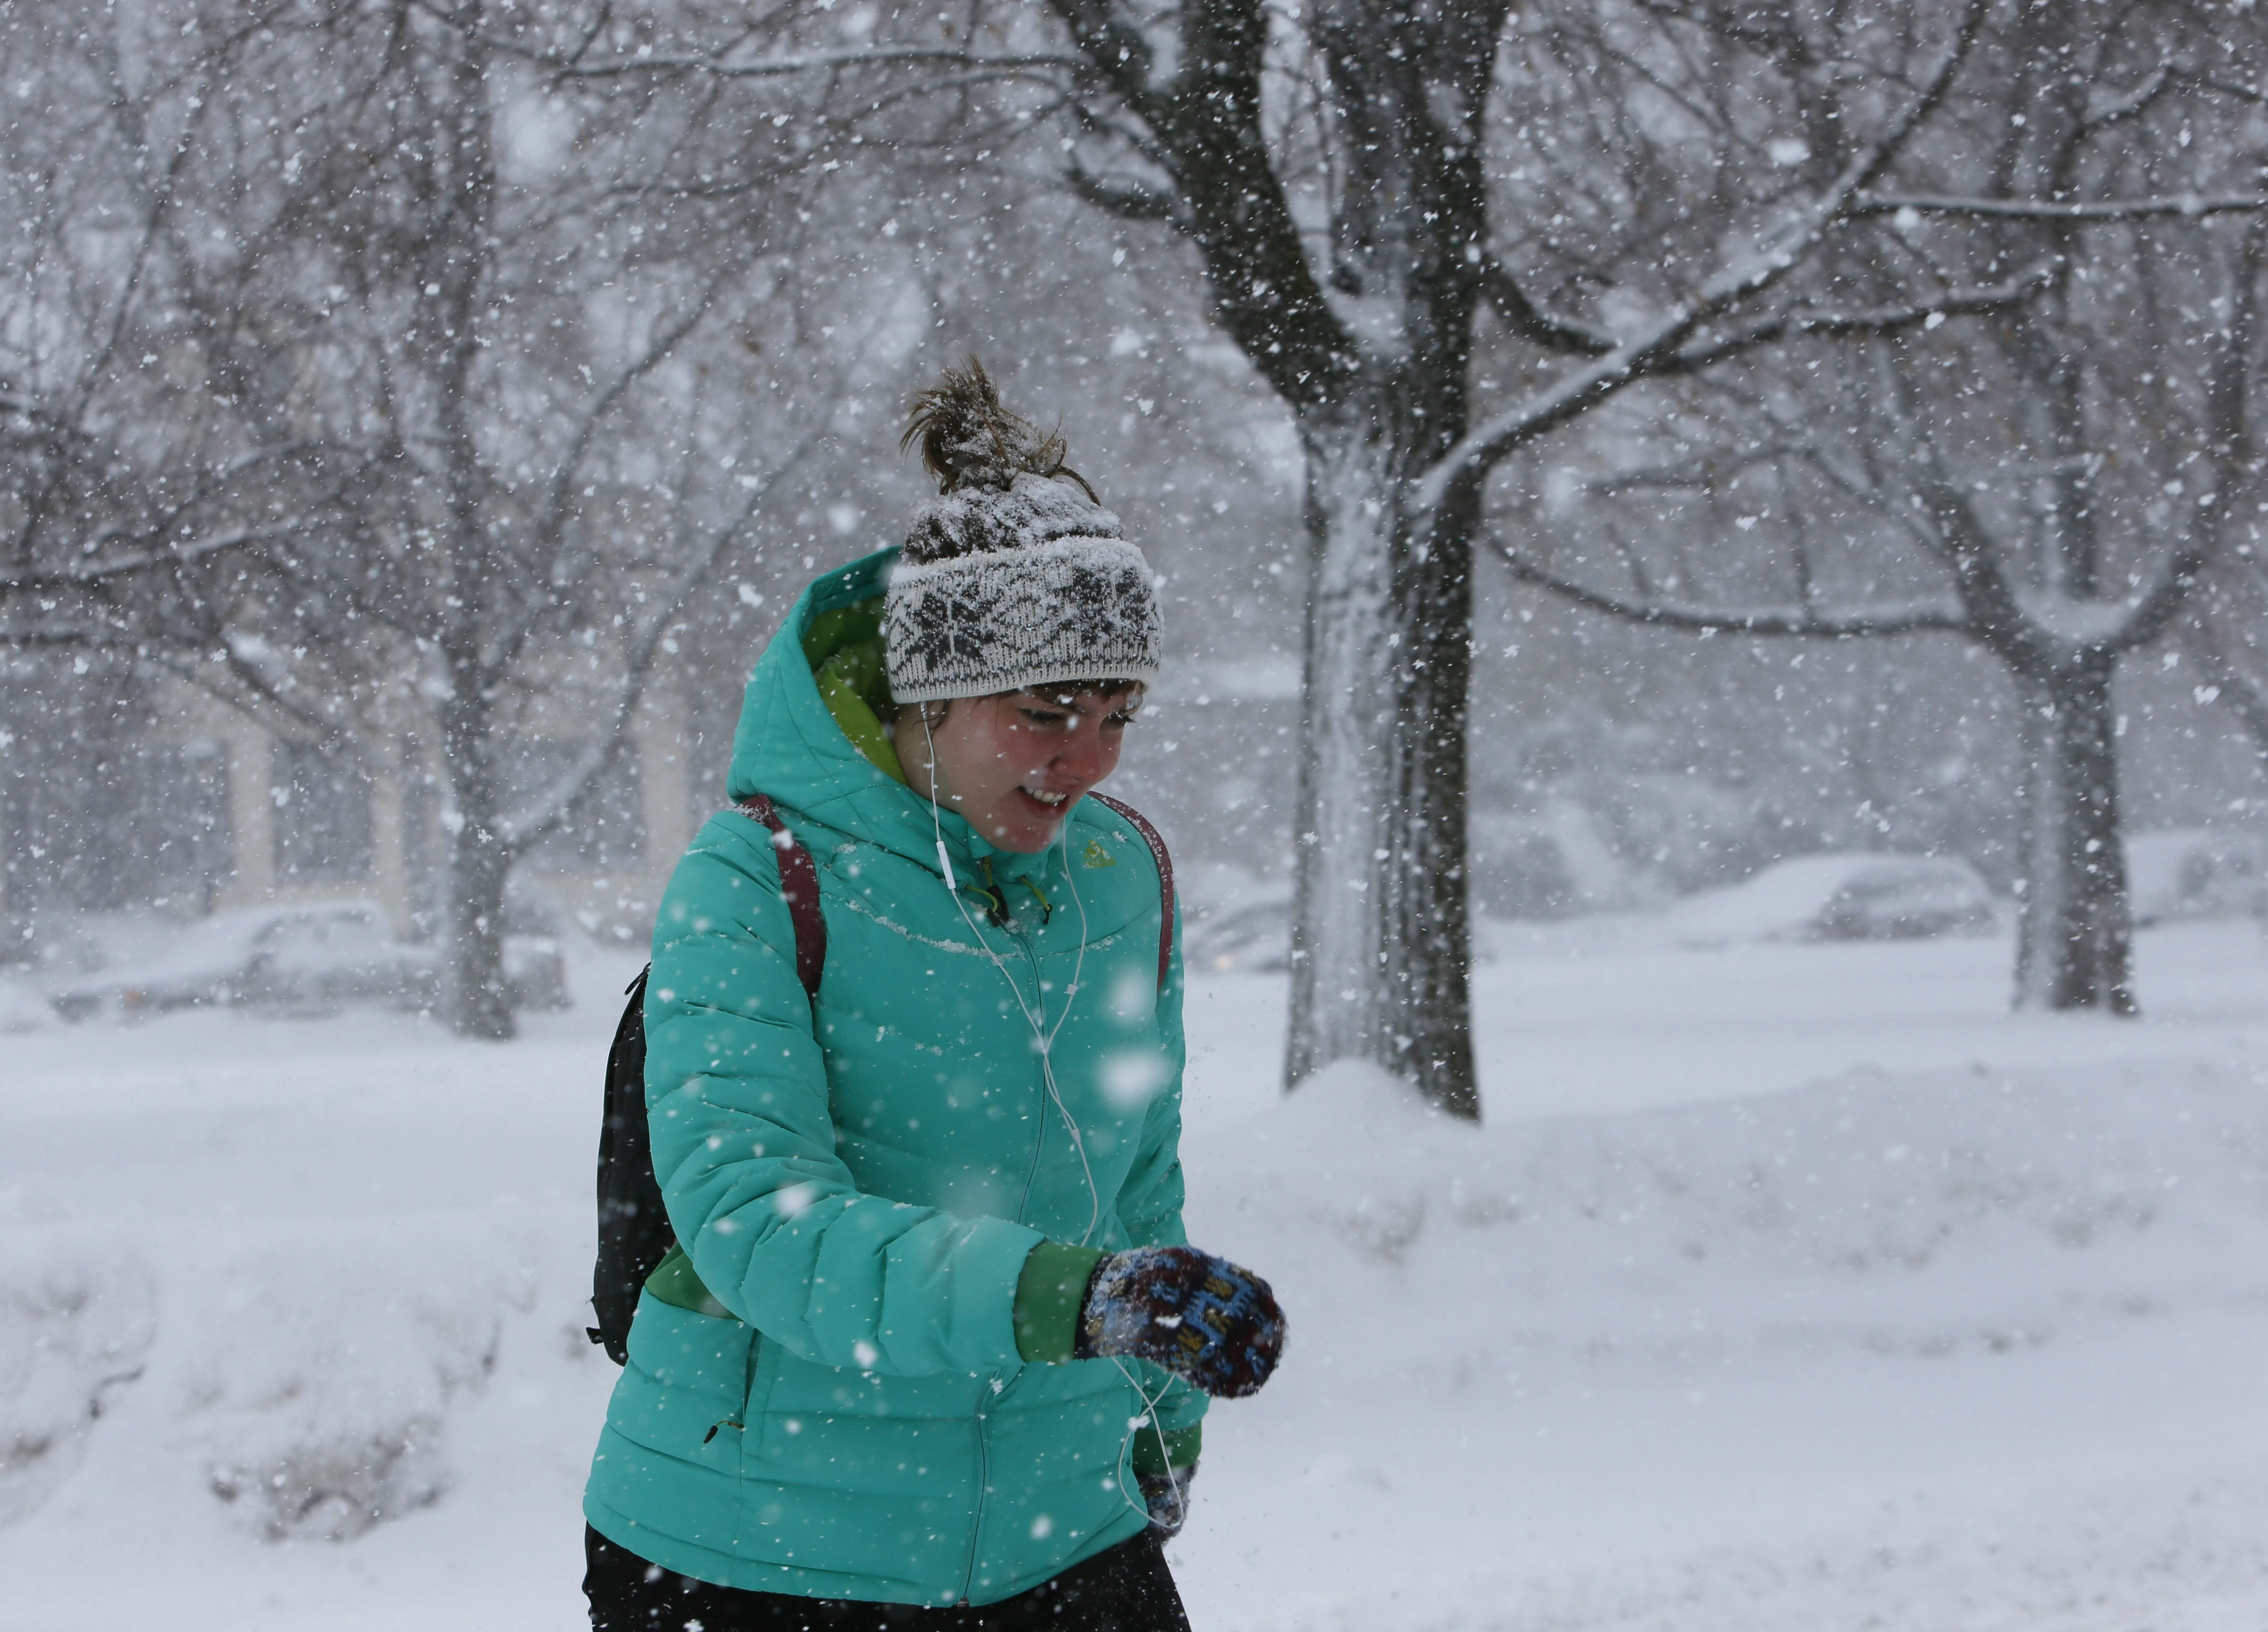 Elsa Bragadottir of Buffalo trudges through snow on Bidwell Avenue in Buffalo on her way to the gym, Saturday, Feb. 14, 2015.  (Derek Gee/Buffalo News)